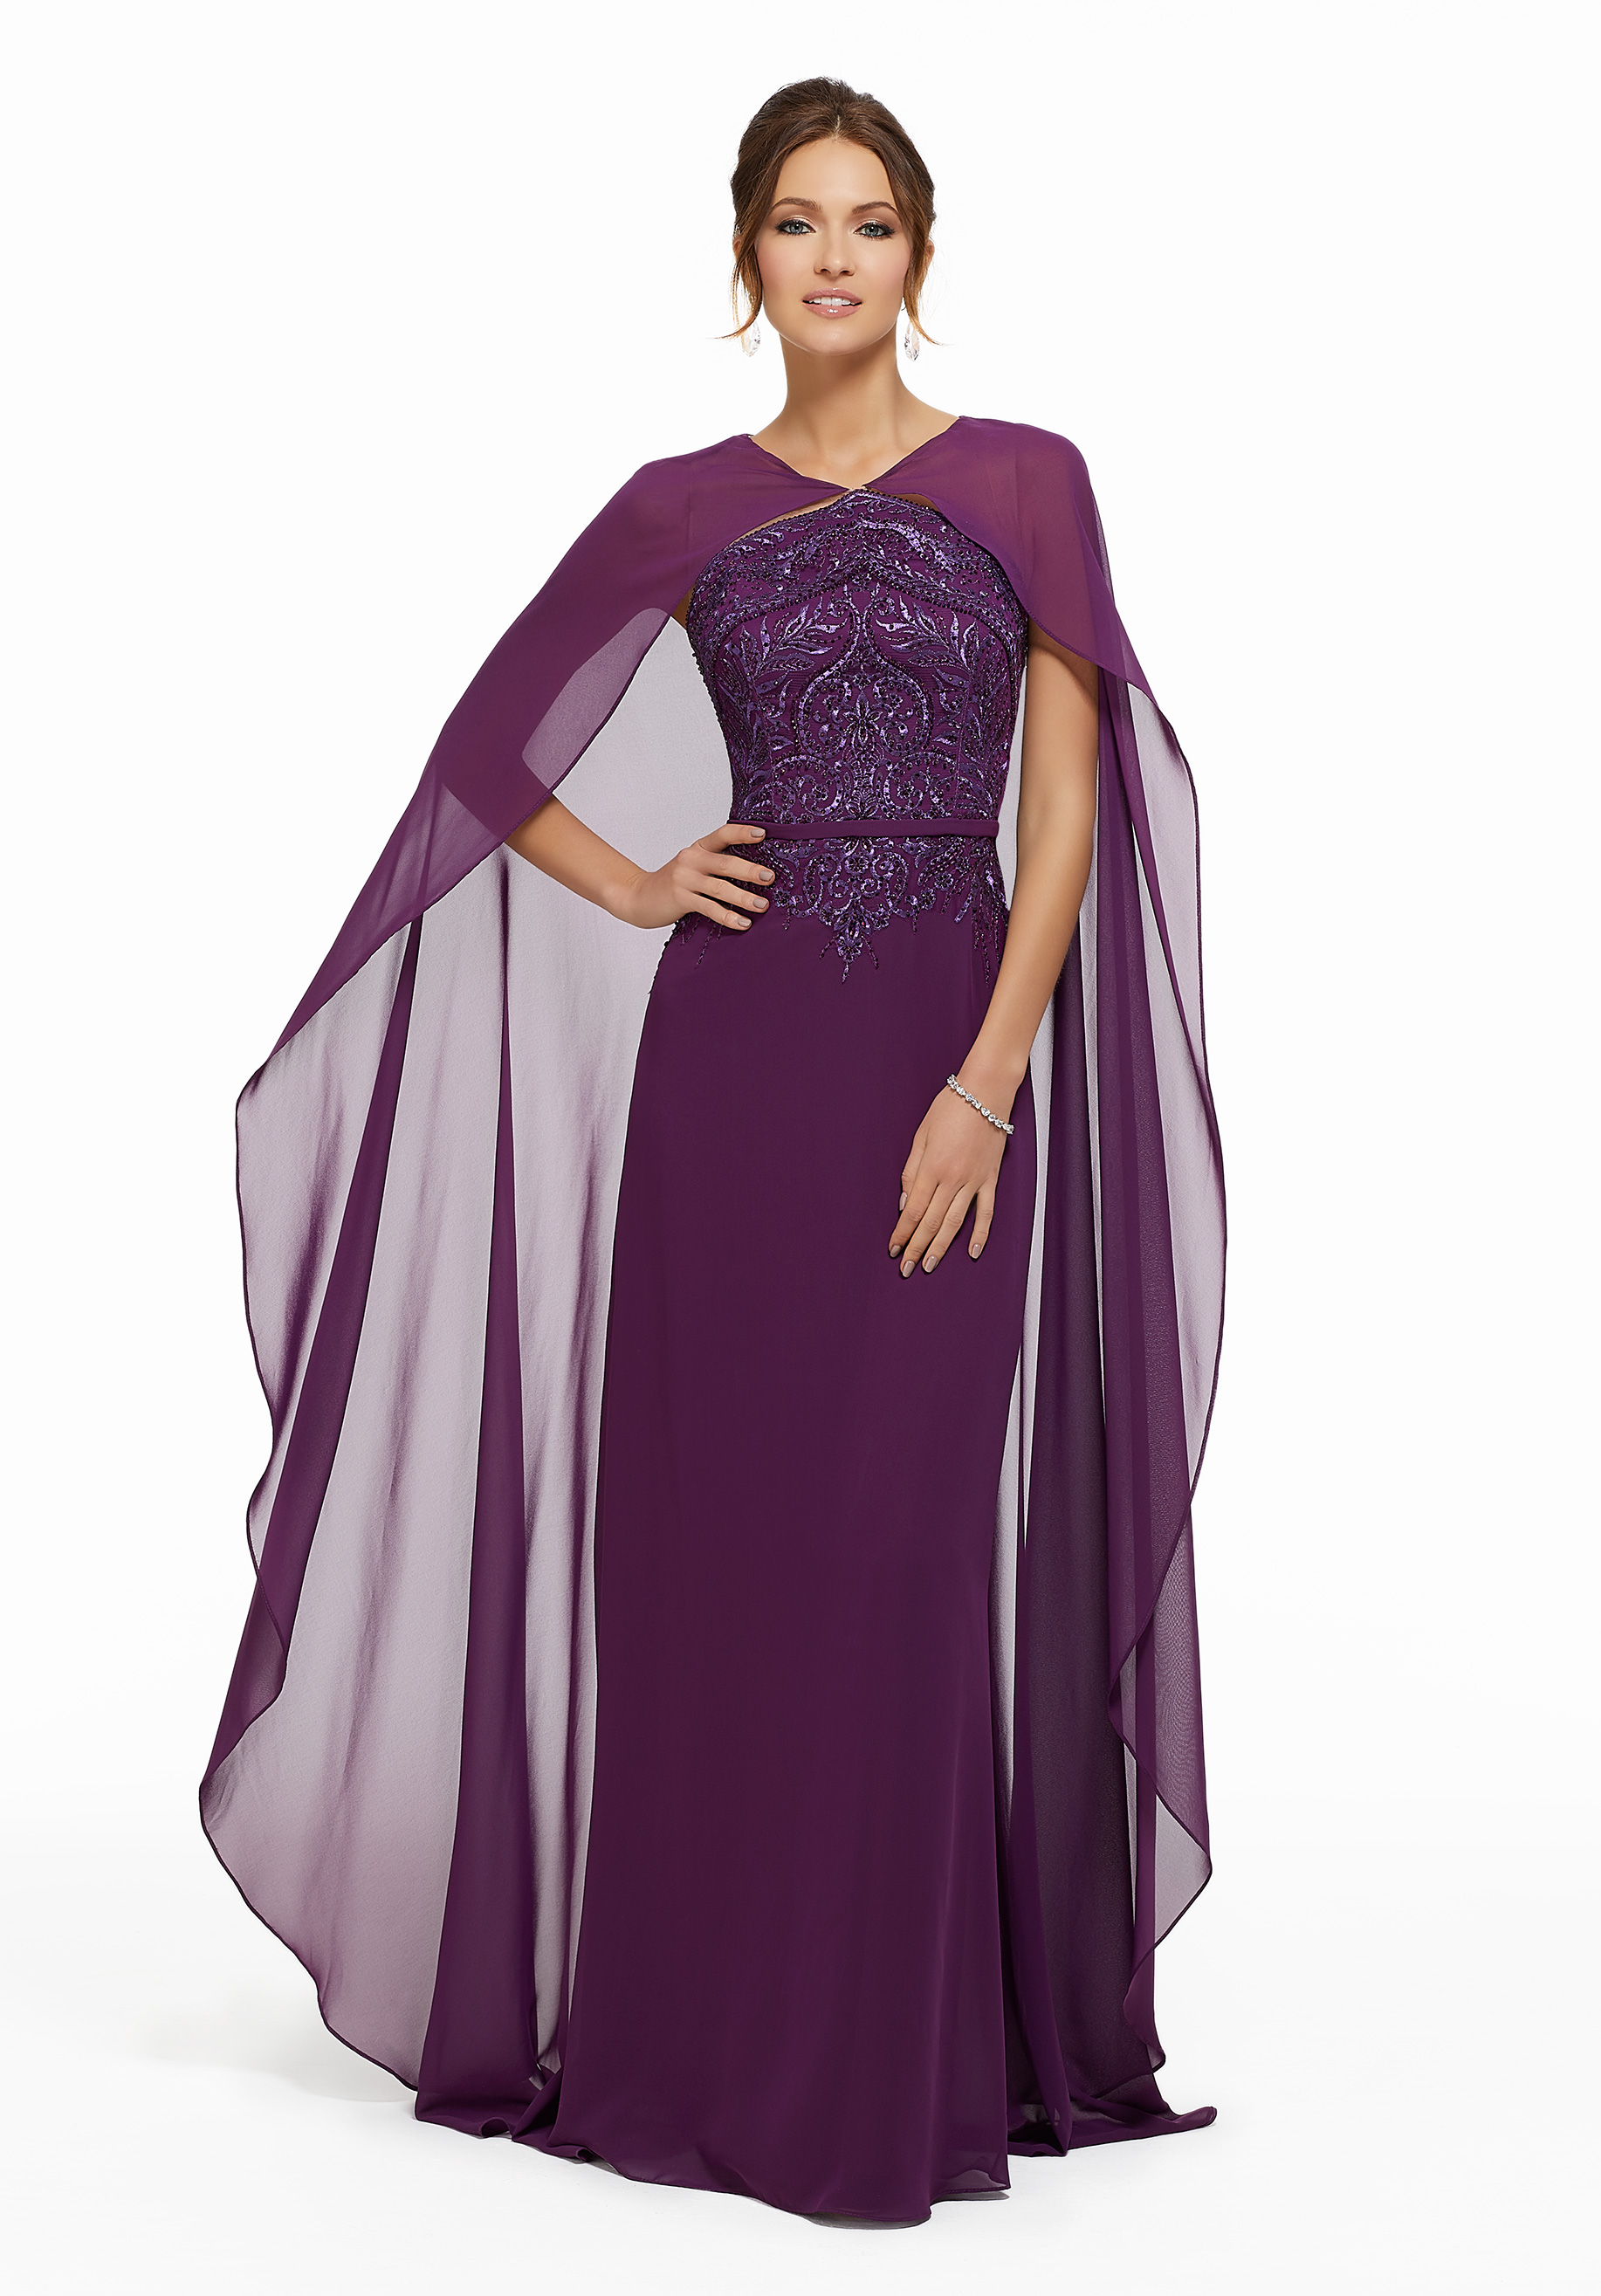 Plus Size Formal Dresses In San Antonio Tx